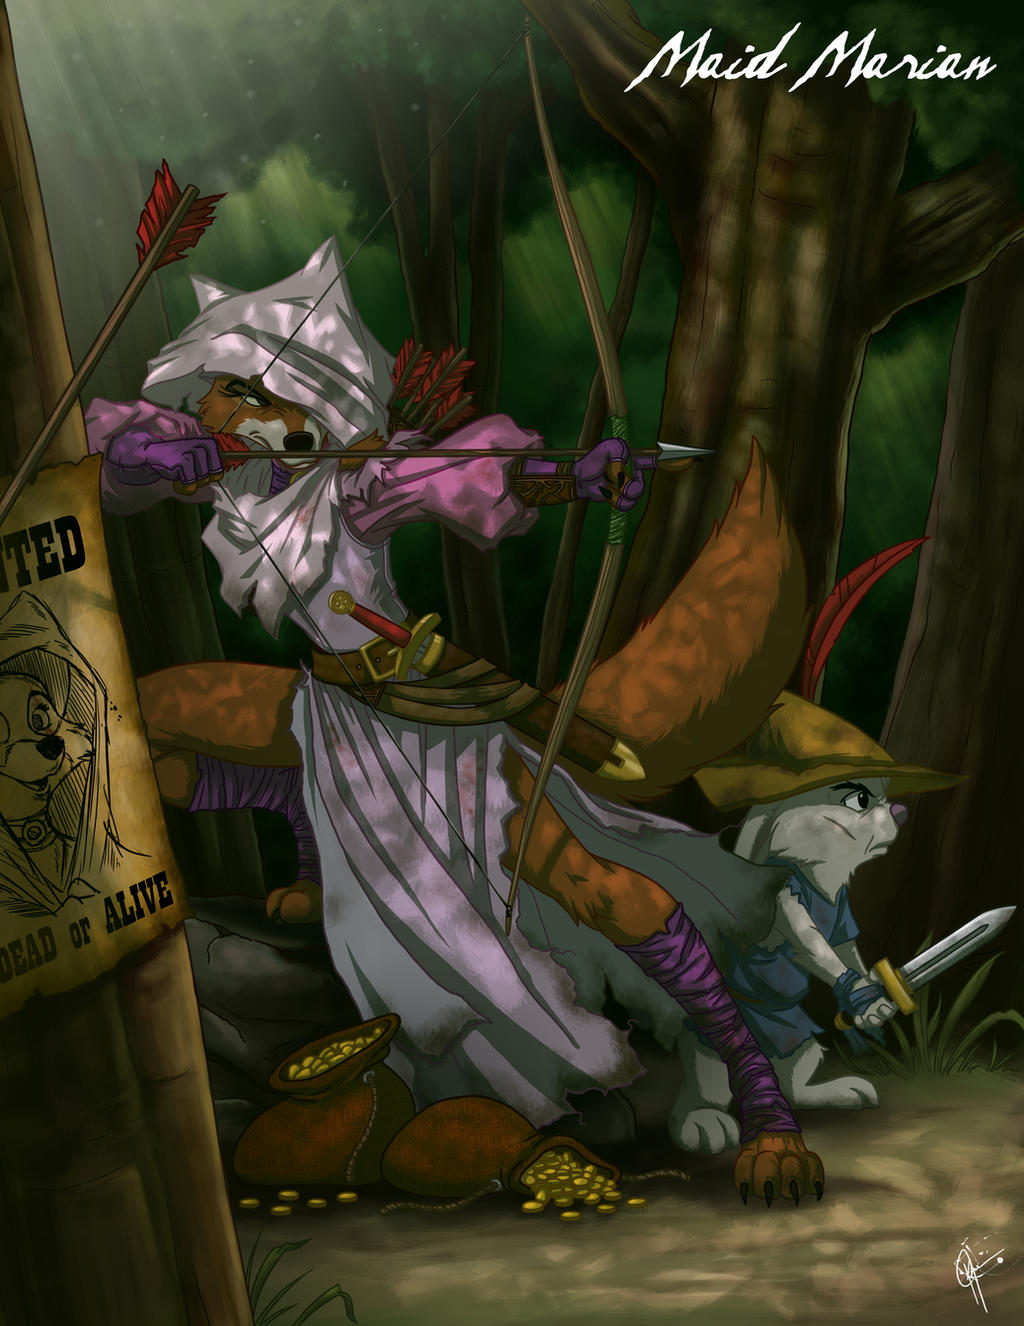 Twisted Princess: Maid Marian